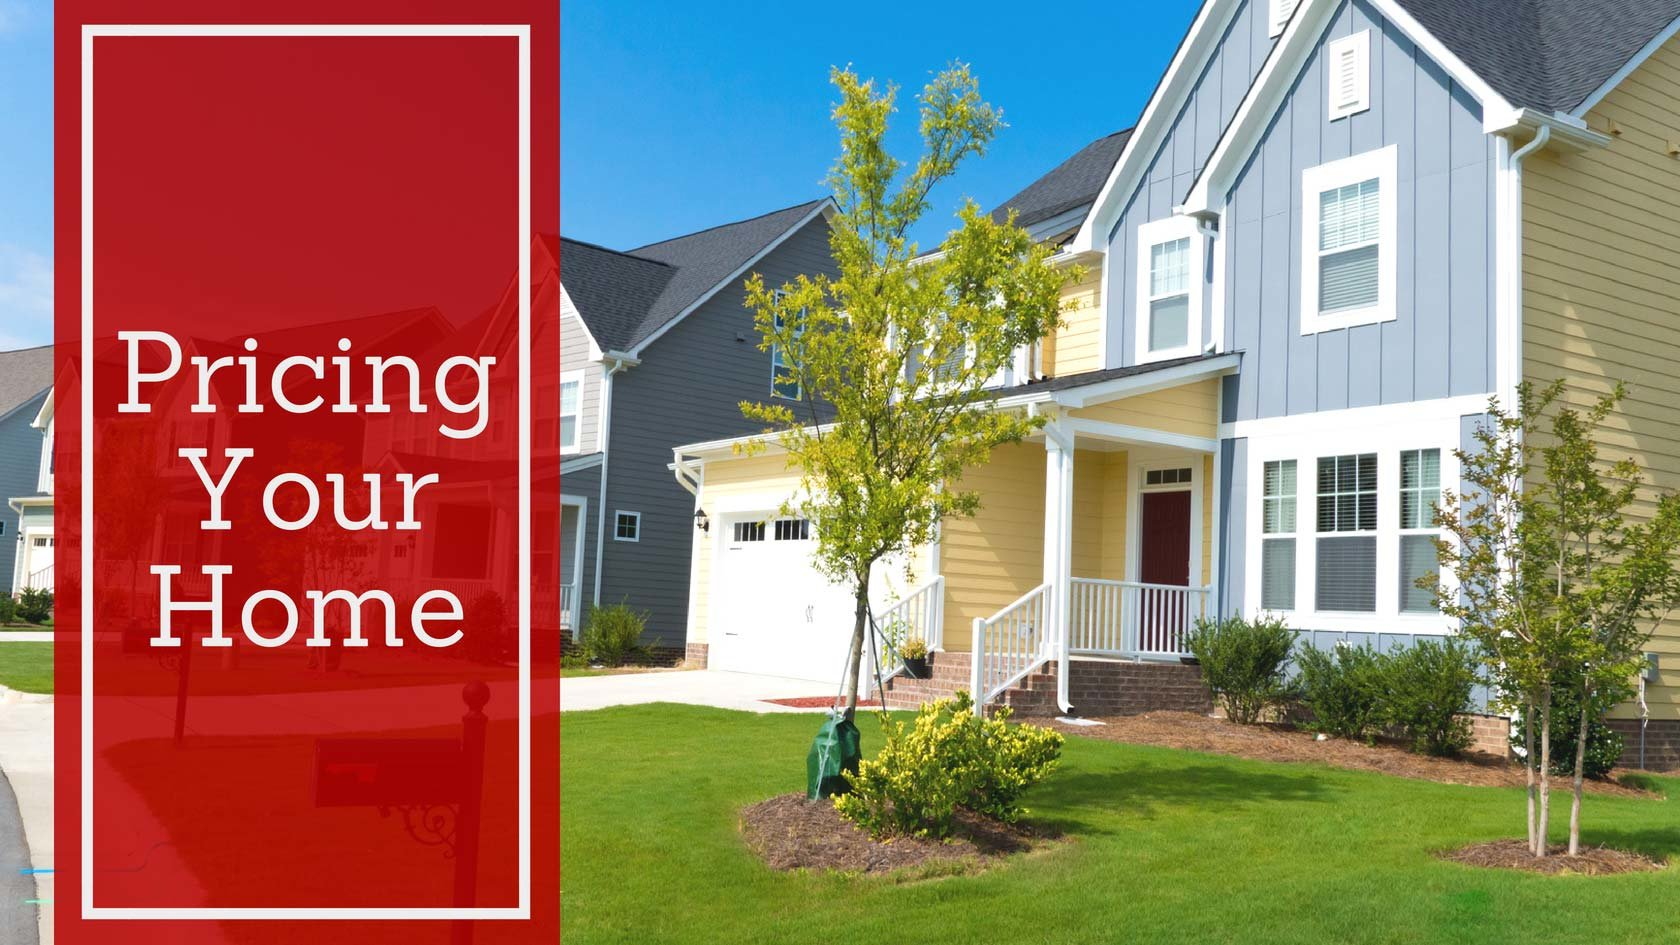 Pricing Your Home Competitively